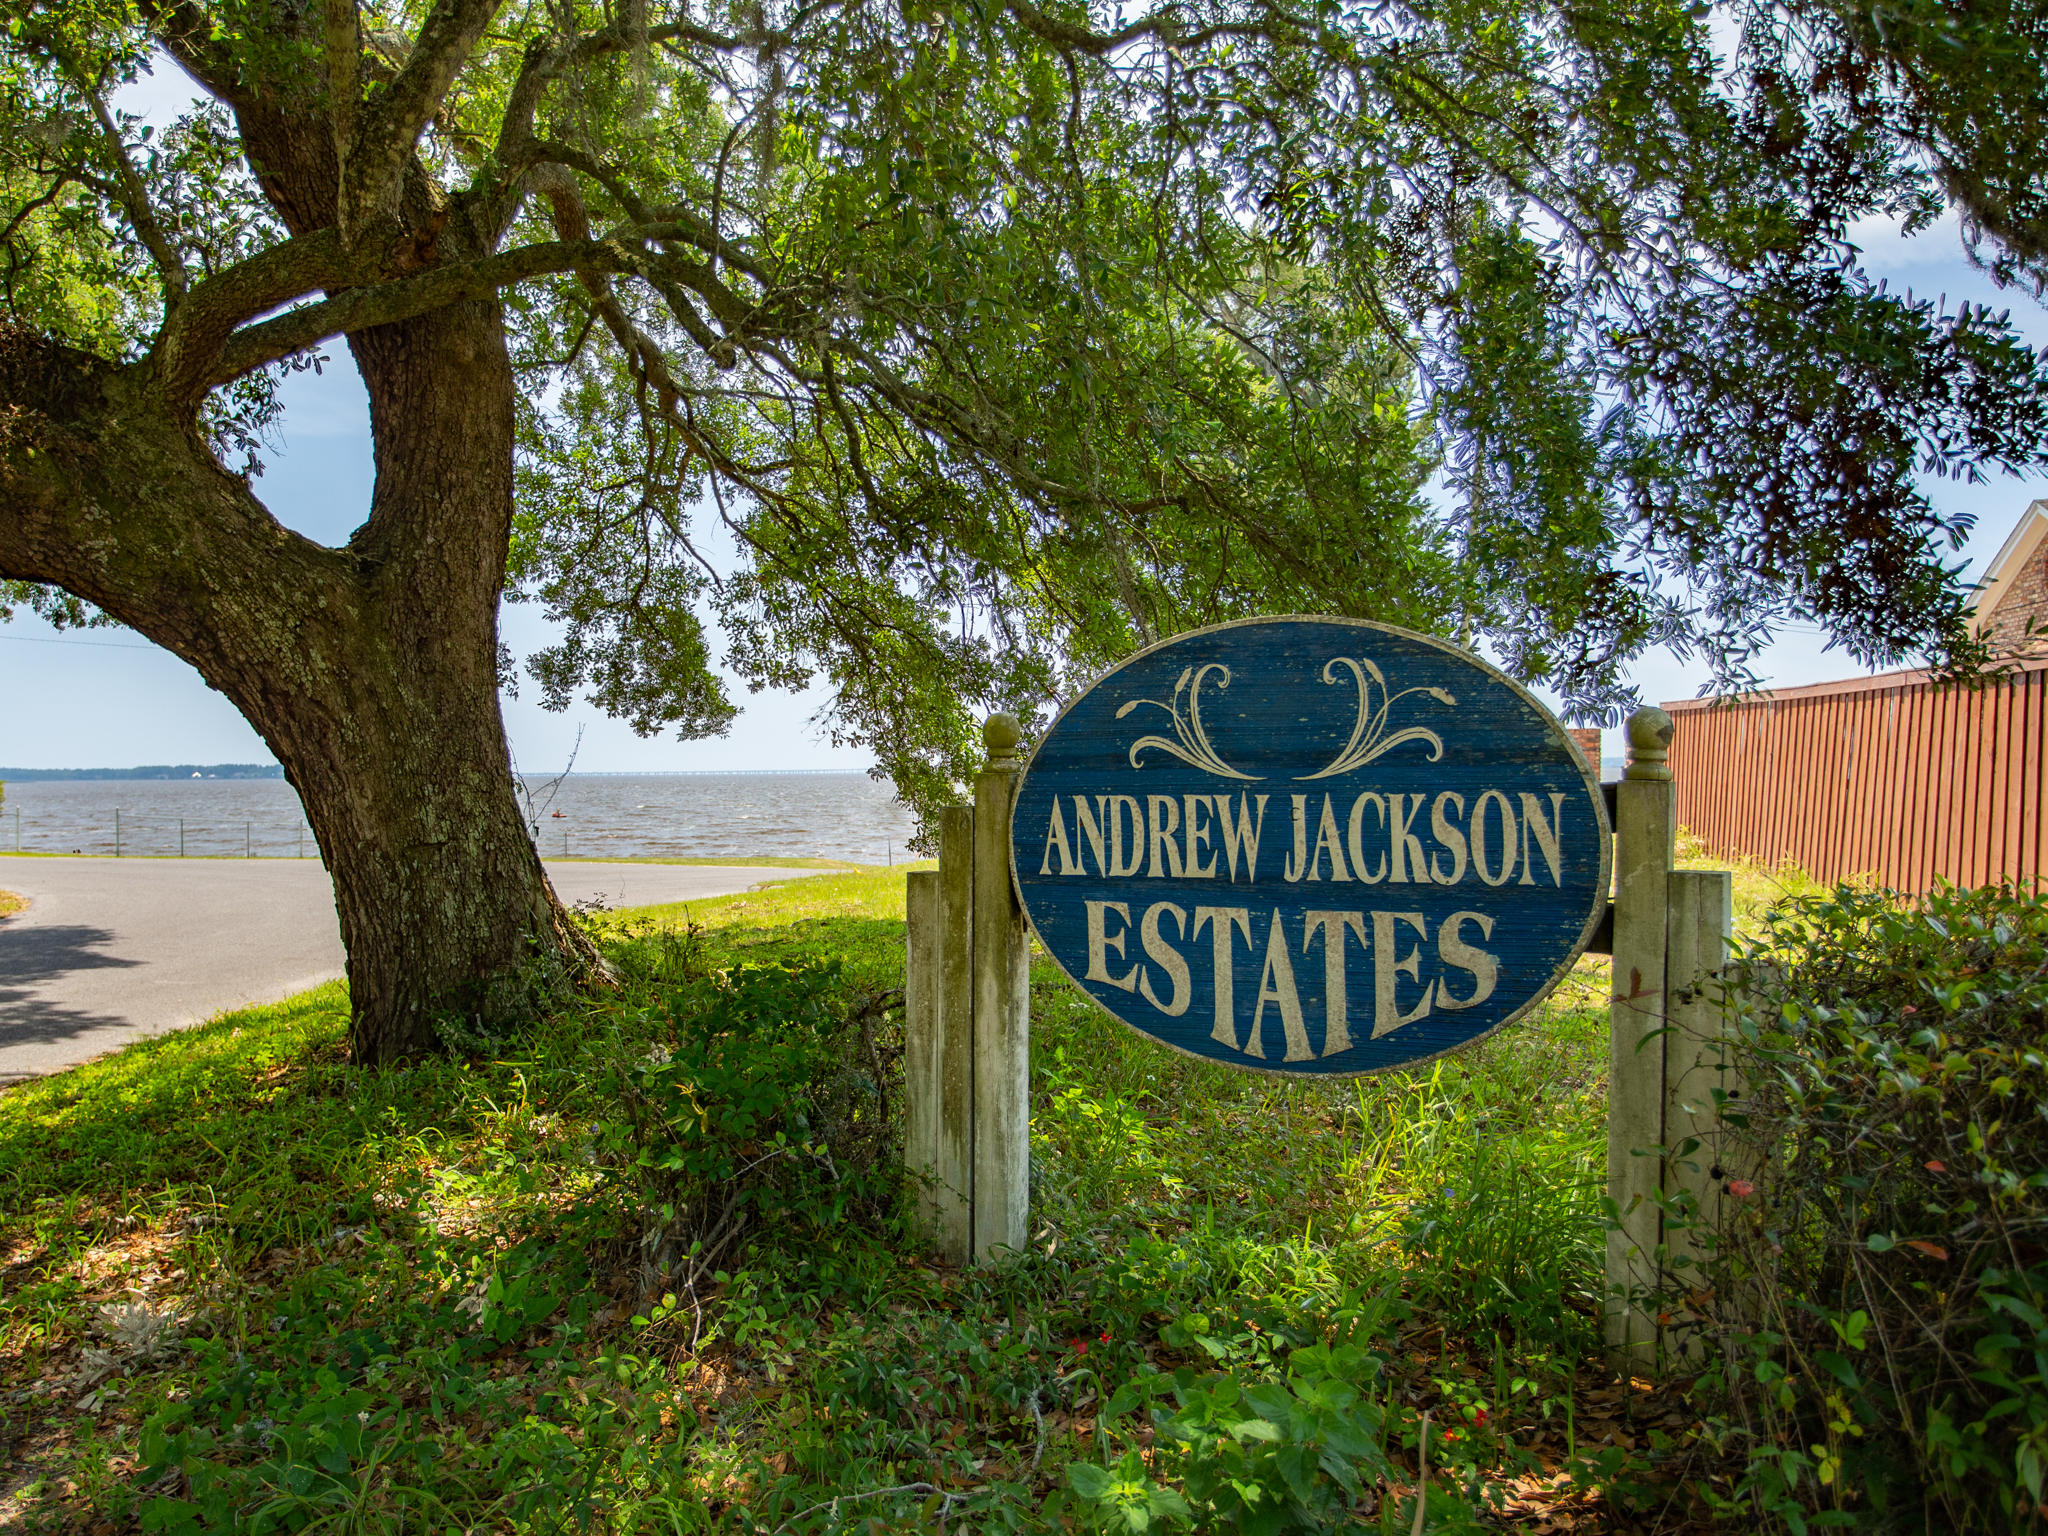 3649 Andrew Jackson Drive, Pace, FL 32571